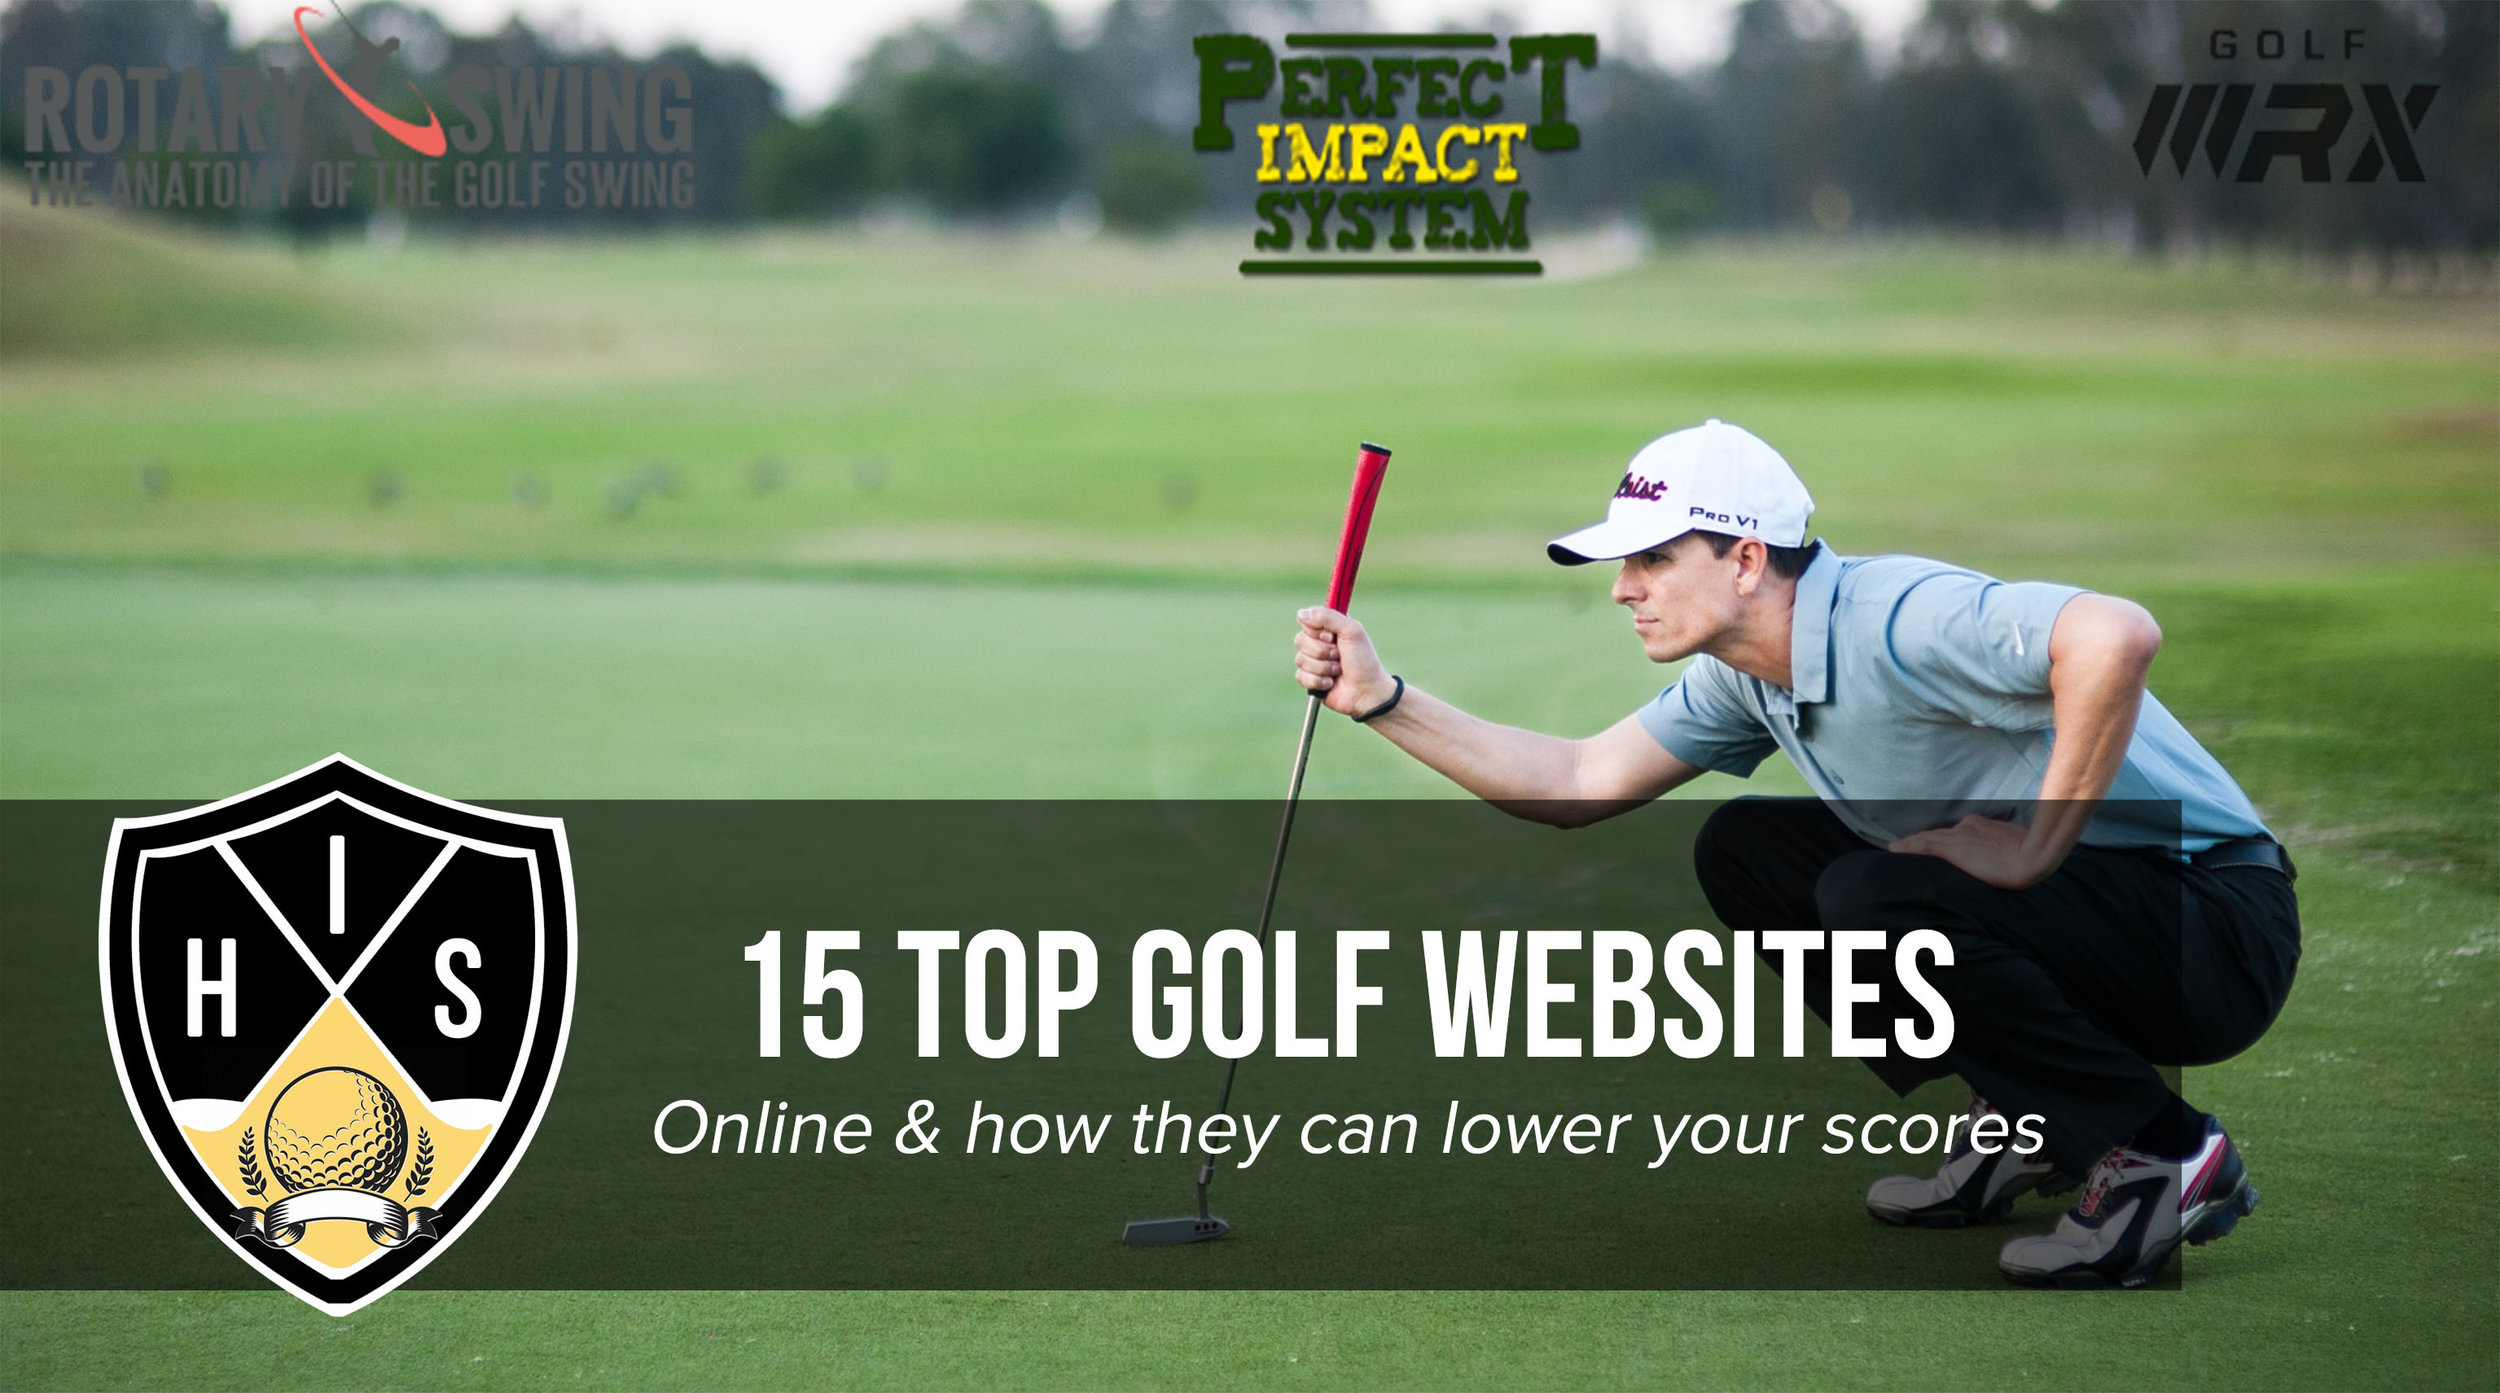 15 top golf websites online